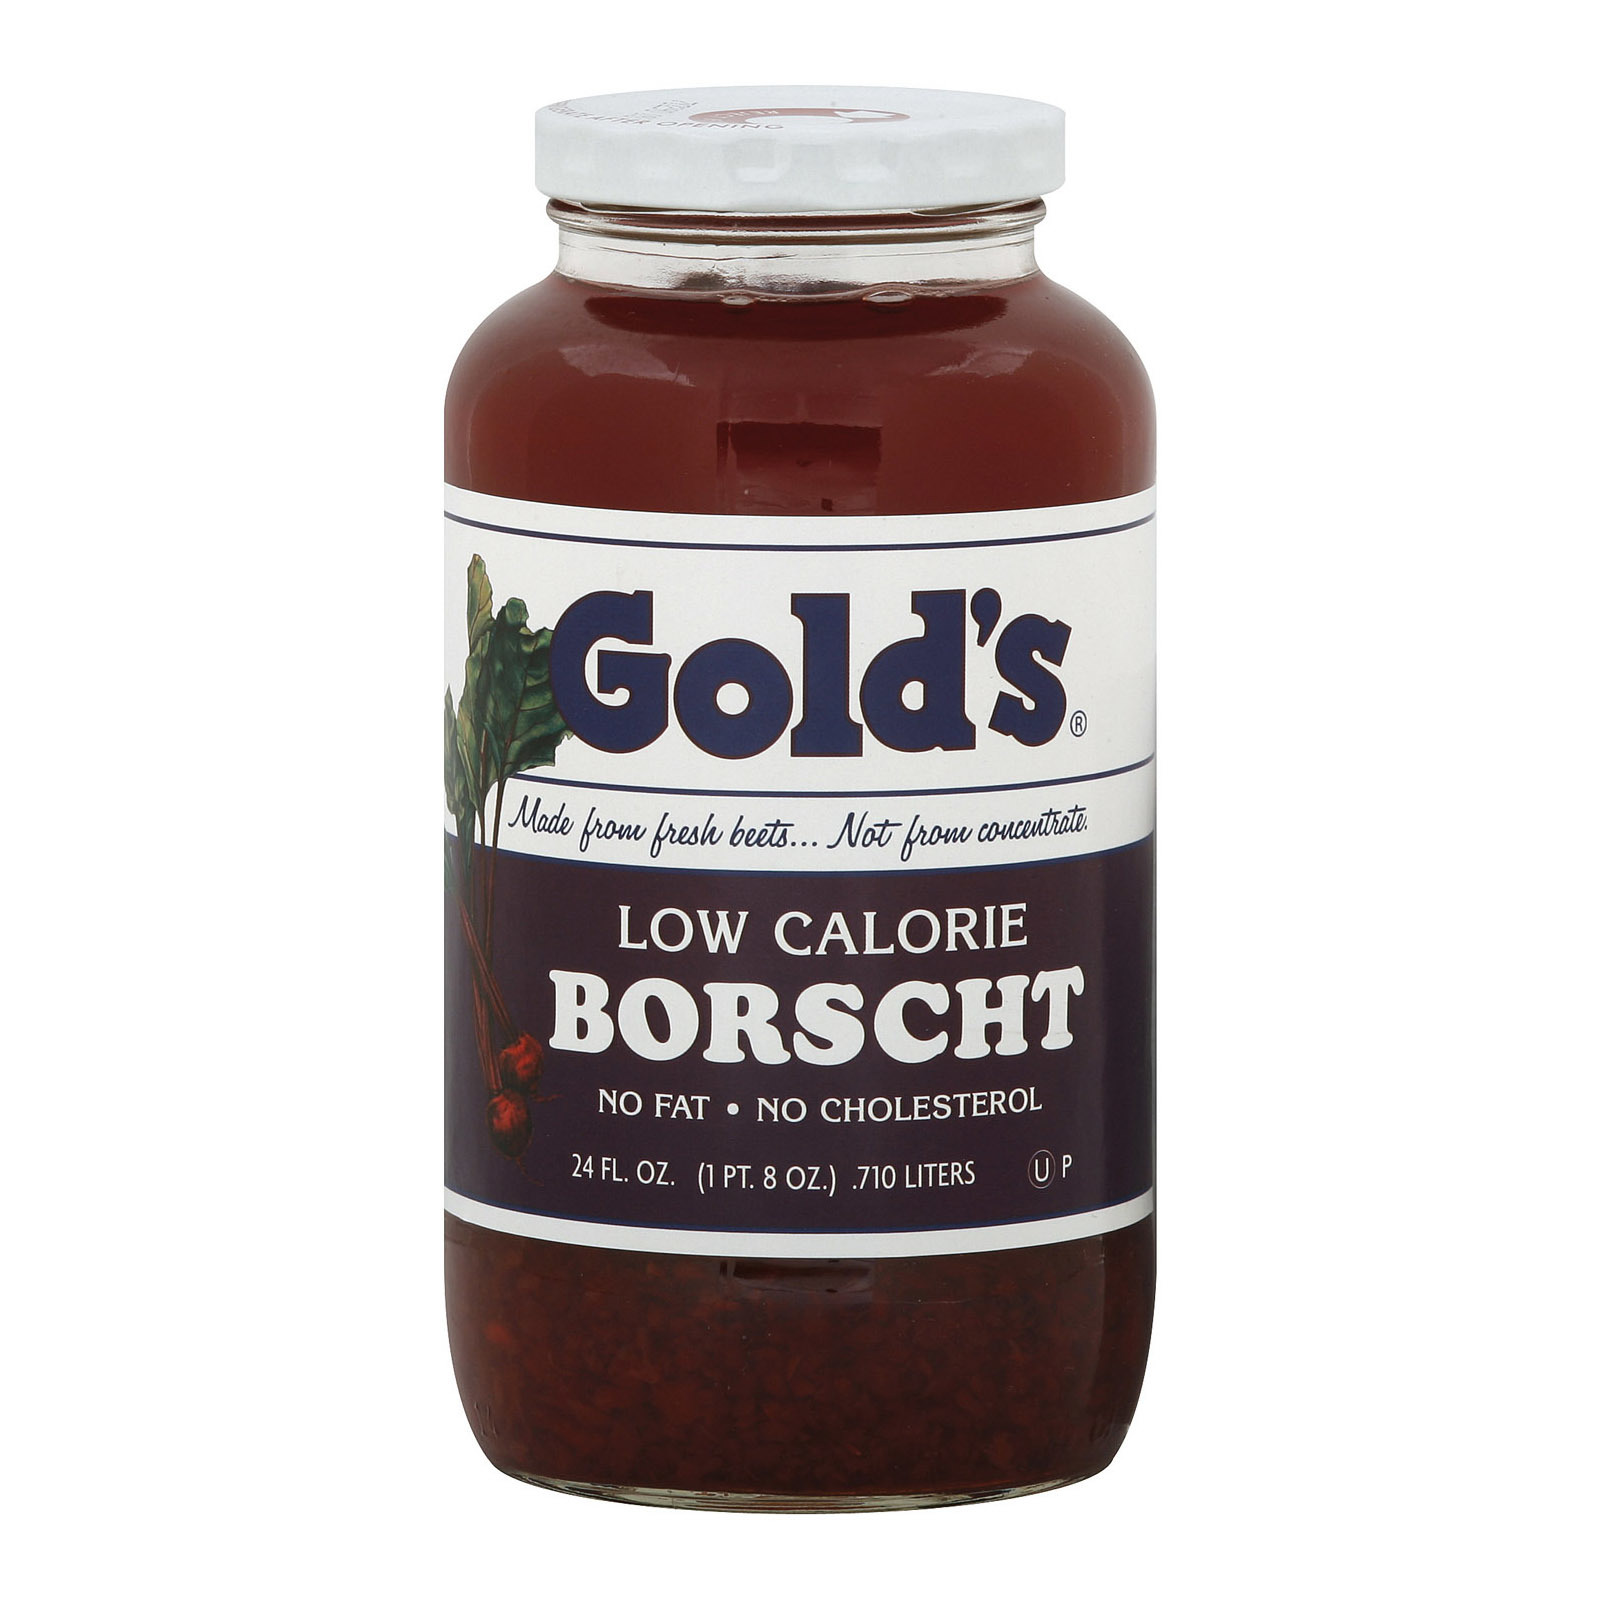 Golds Soup - Low Calorie Borscht - Case of 12 - 24 oz.